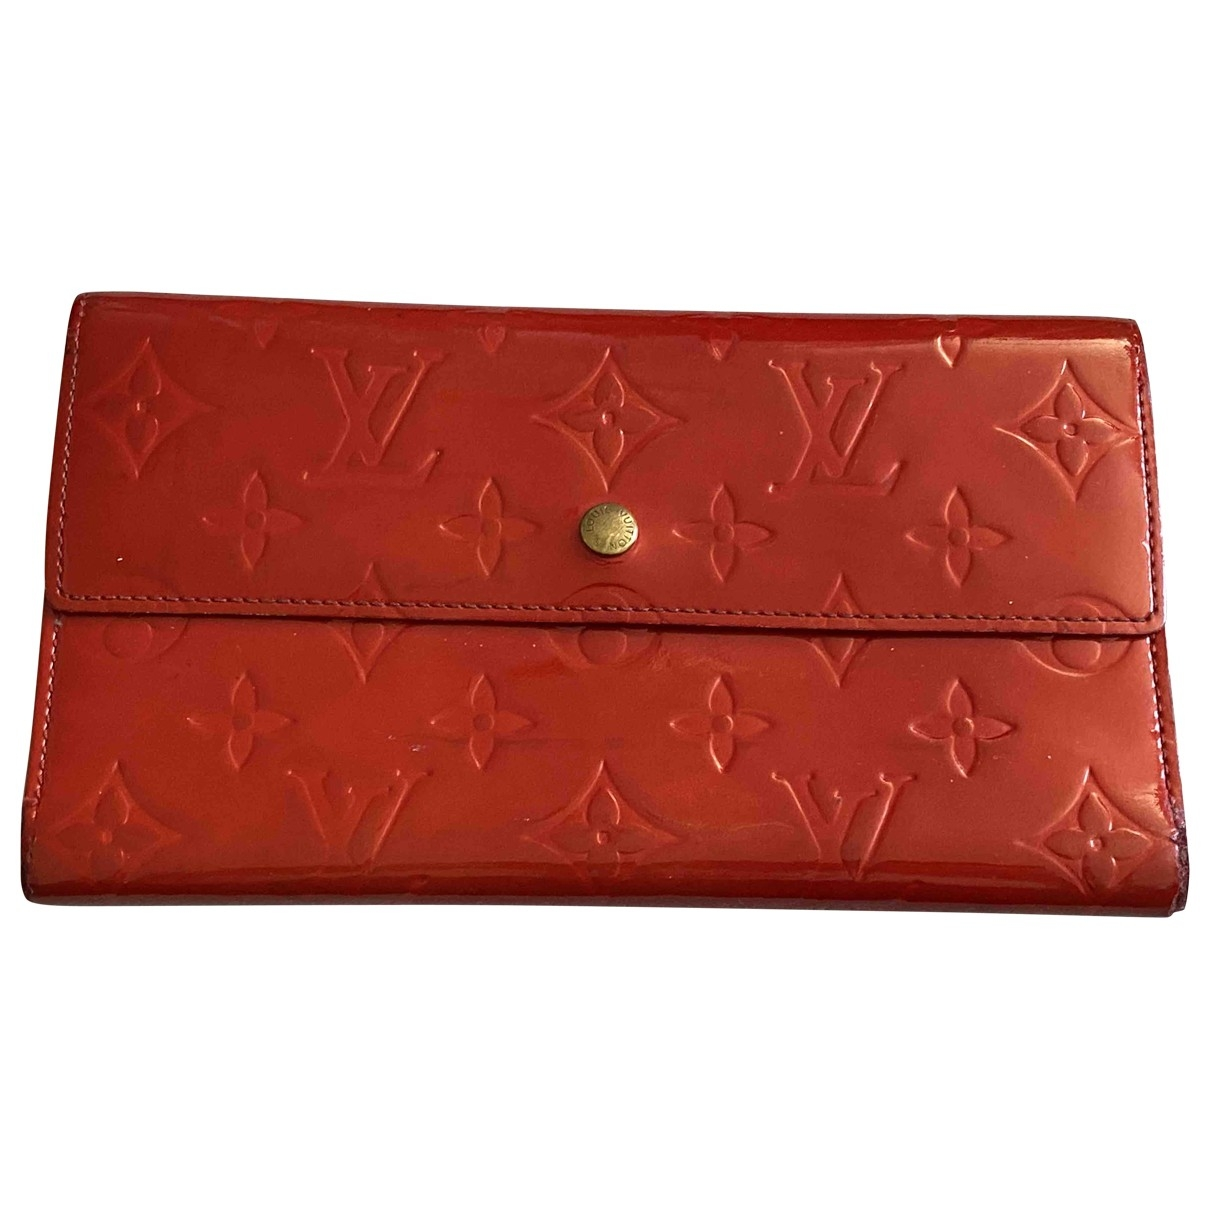 Louis Vuitton \N Pink Patent leather wallet for Women \N